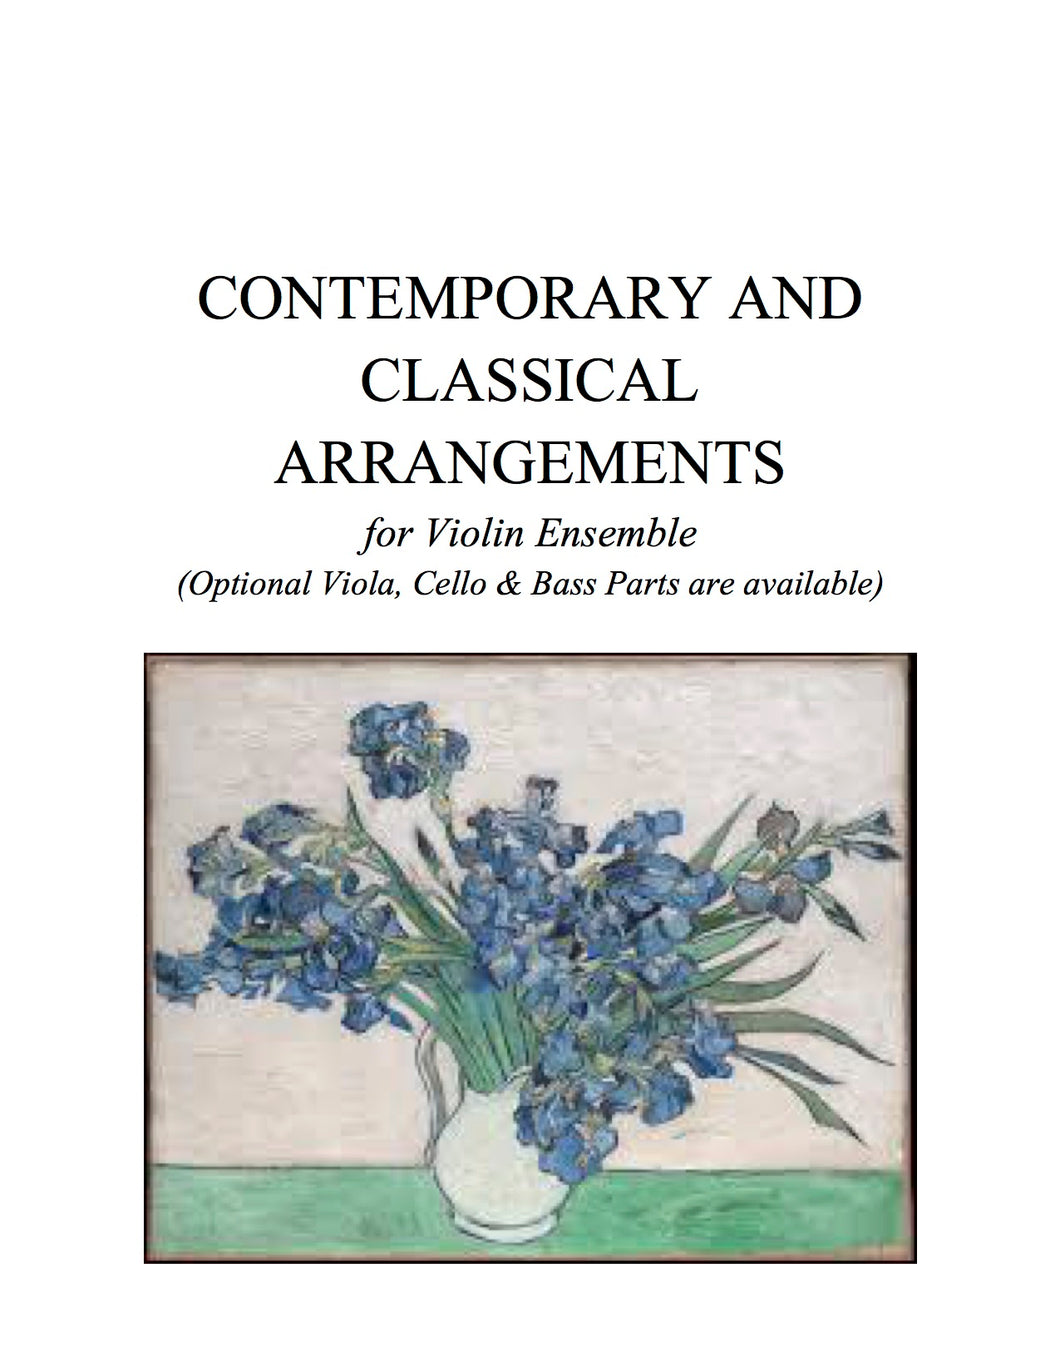 008 B - Contemporary and Classical Arrangements (includes BOTH Violin Ensemble book AND Optional Viola, Cello and Bass parts).